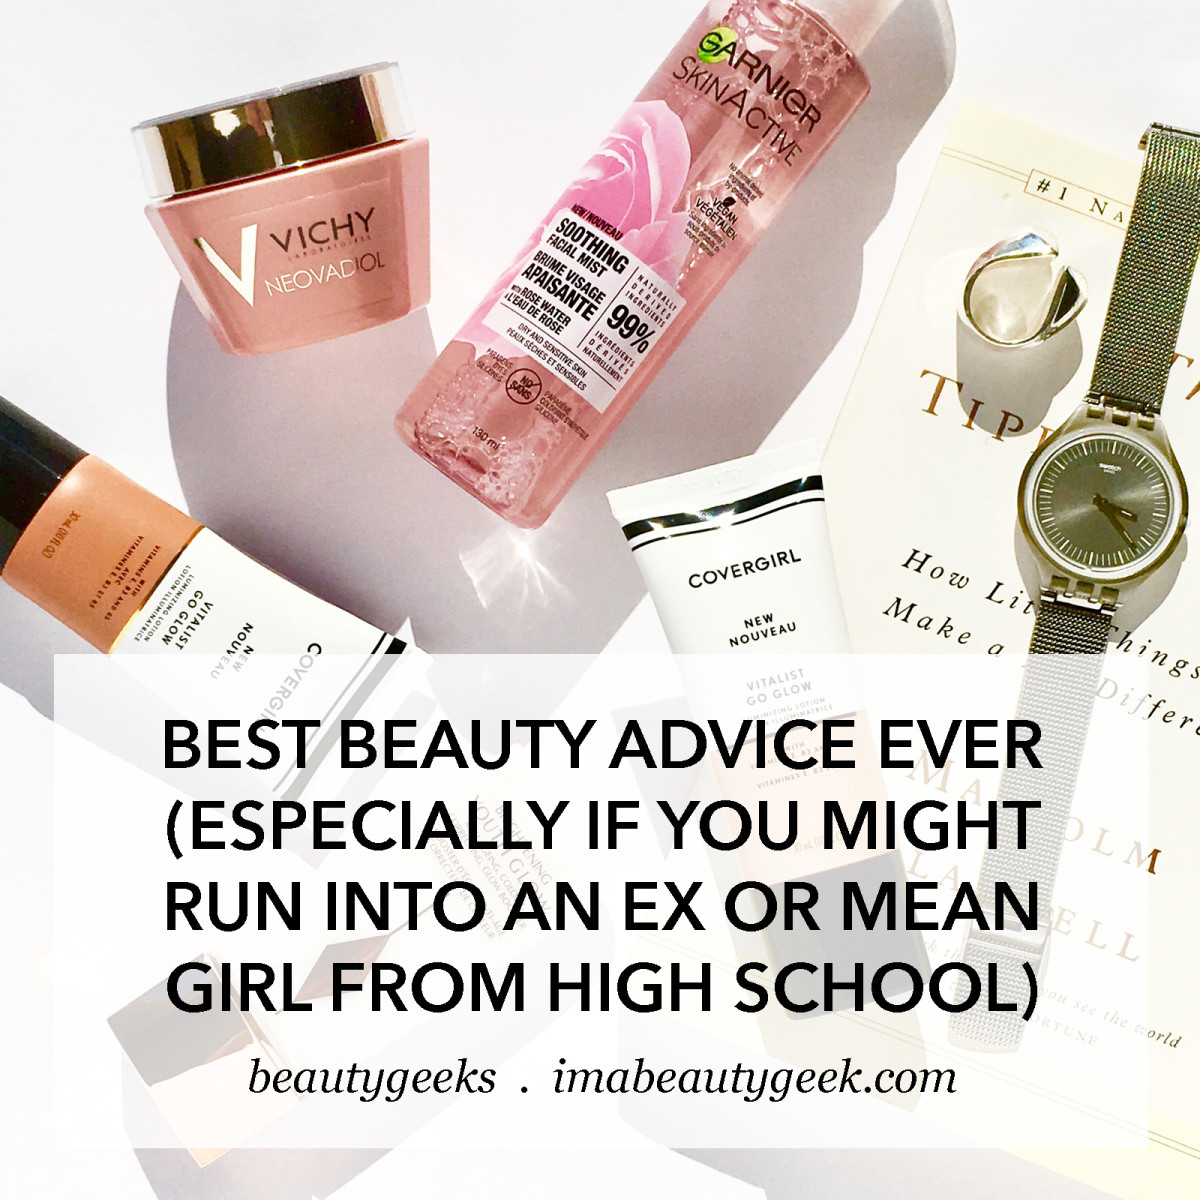 Best Beauty Advice Ever in Case You Run into an Ex or a Mean Girl from High School-BEAUTYGEEKS